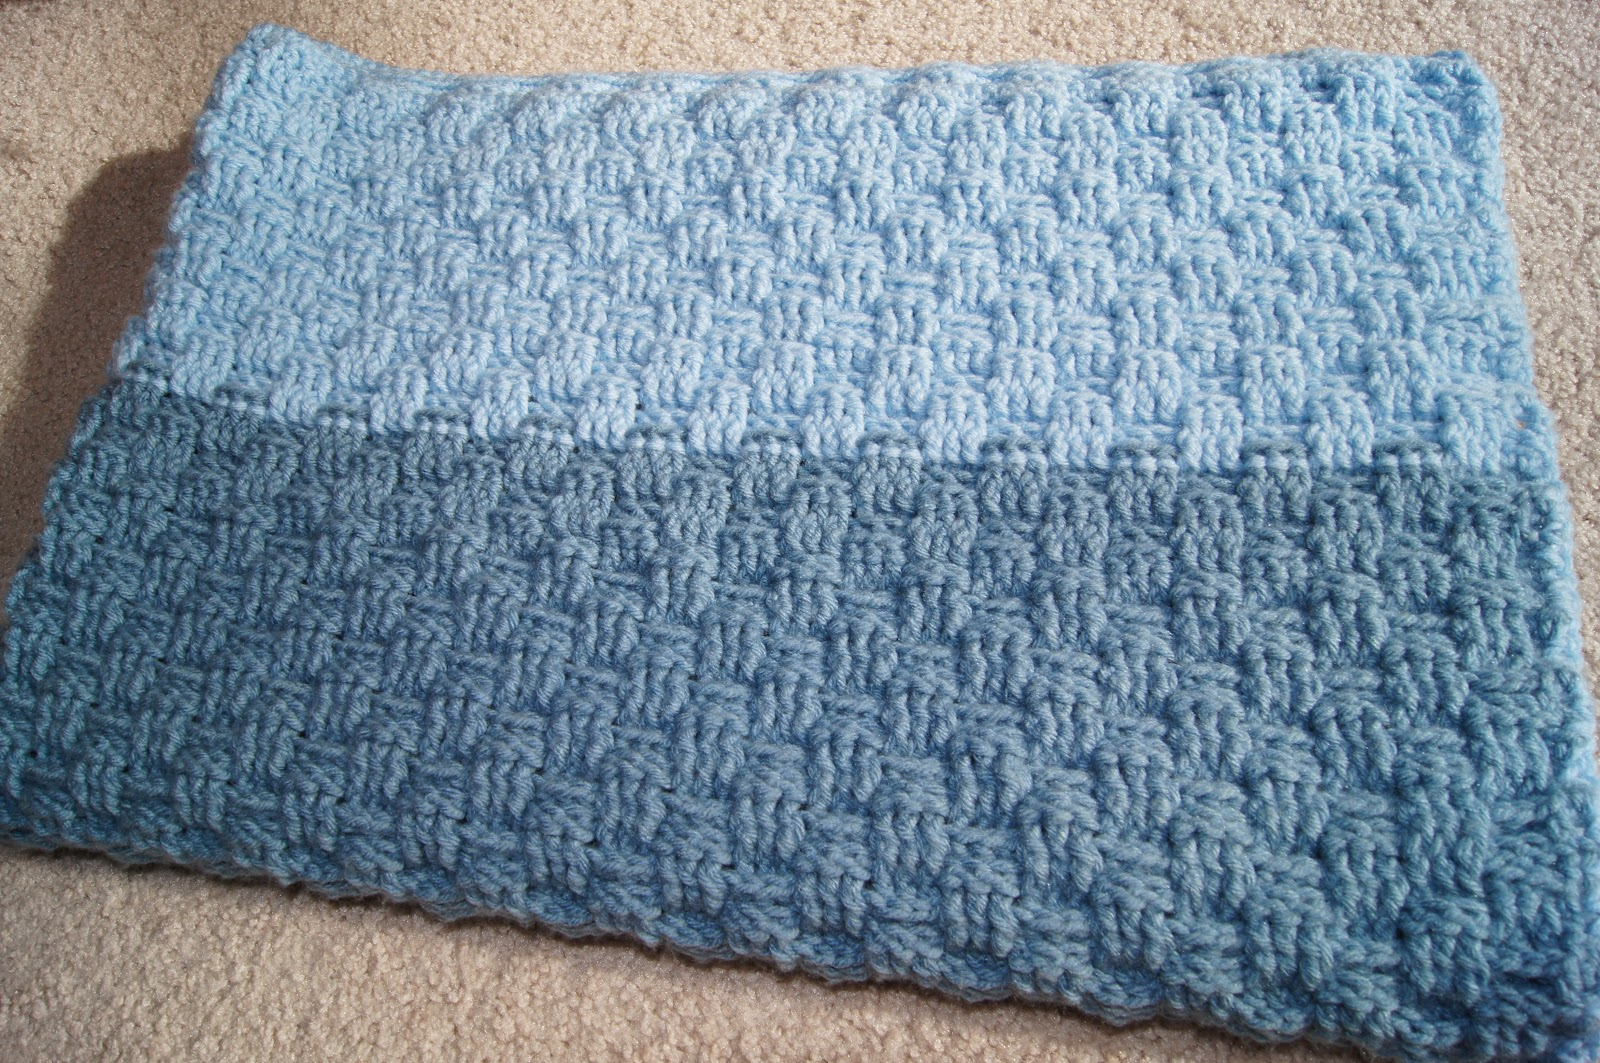 How to crochet a basket weave baby blanket : All about crochet basketweave baby blanket